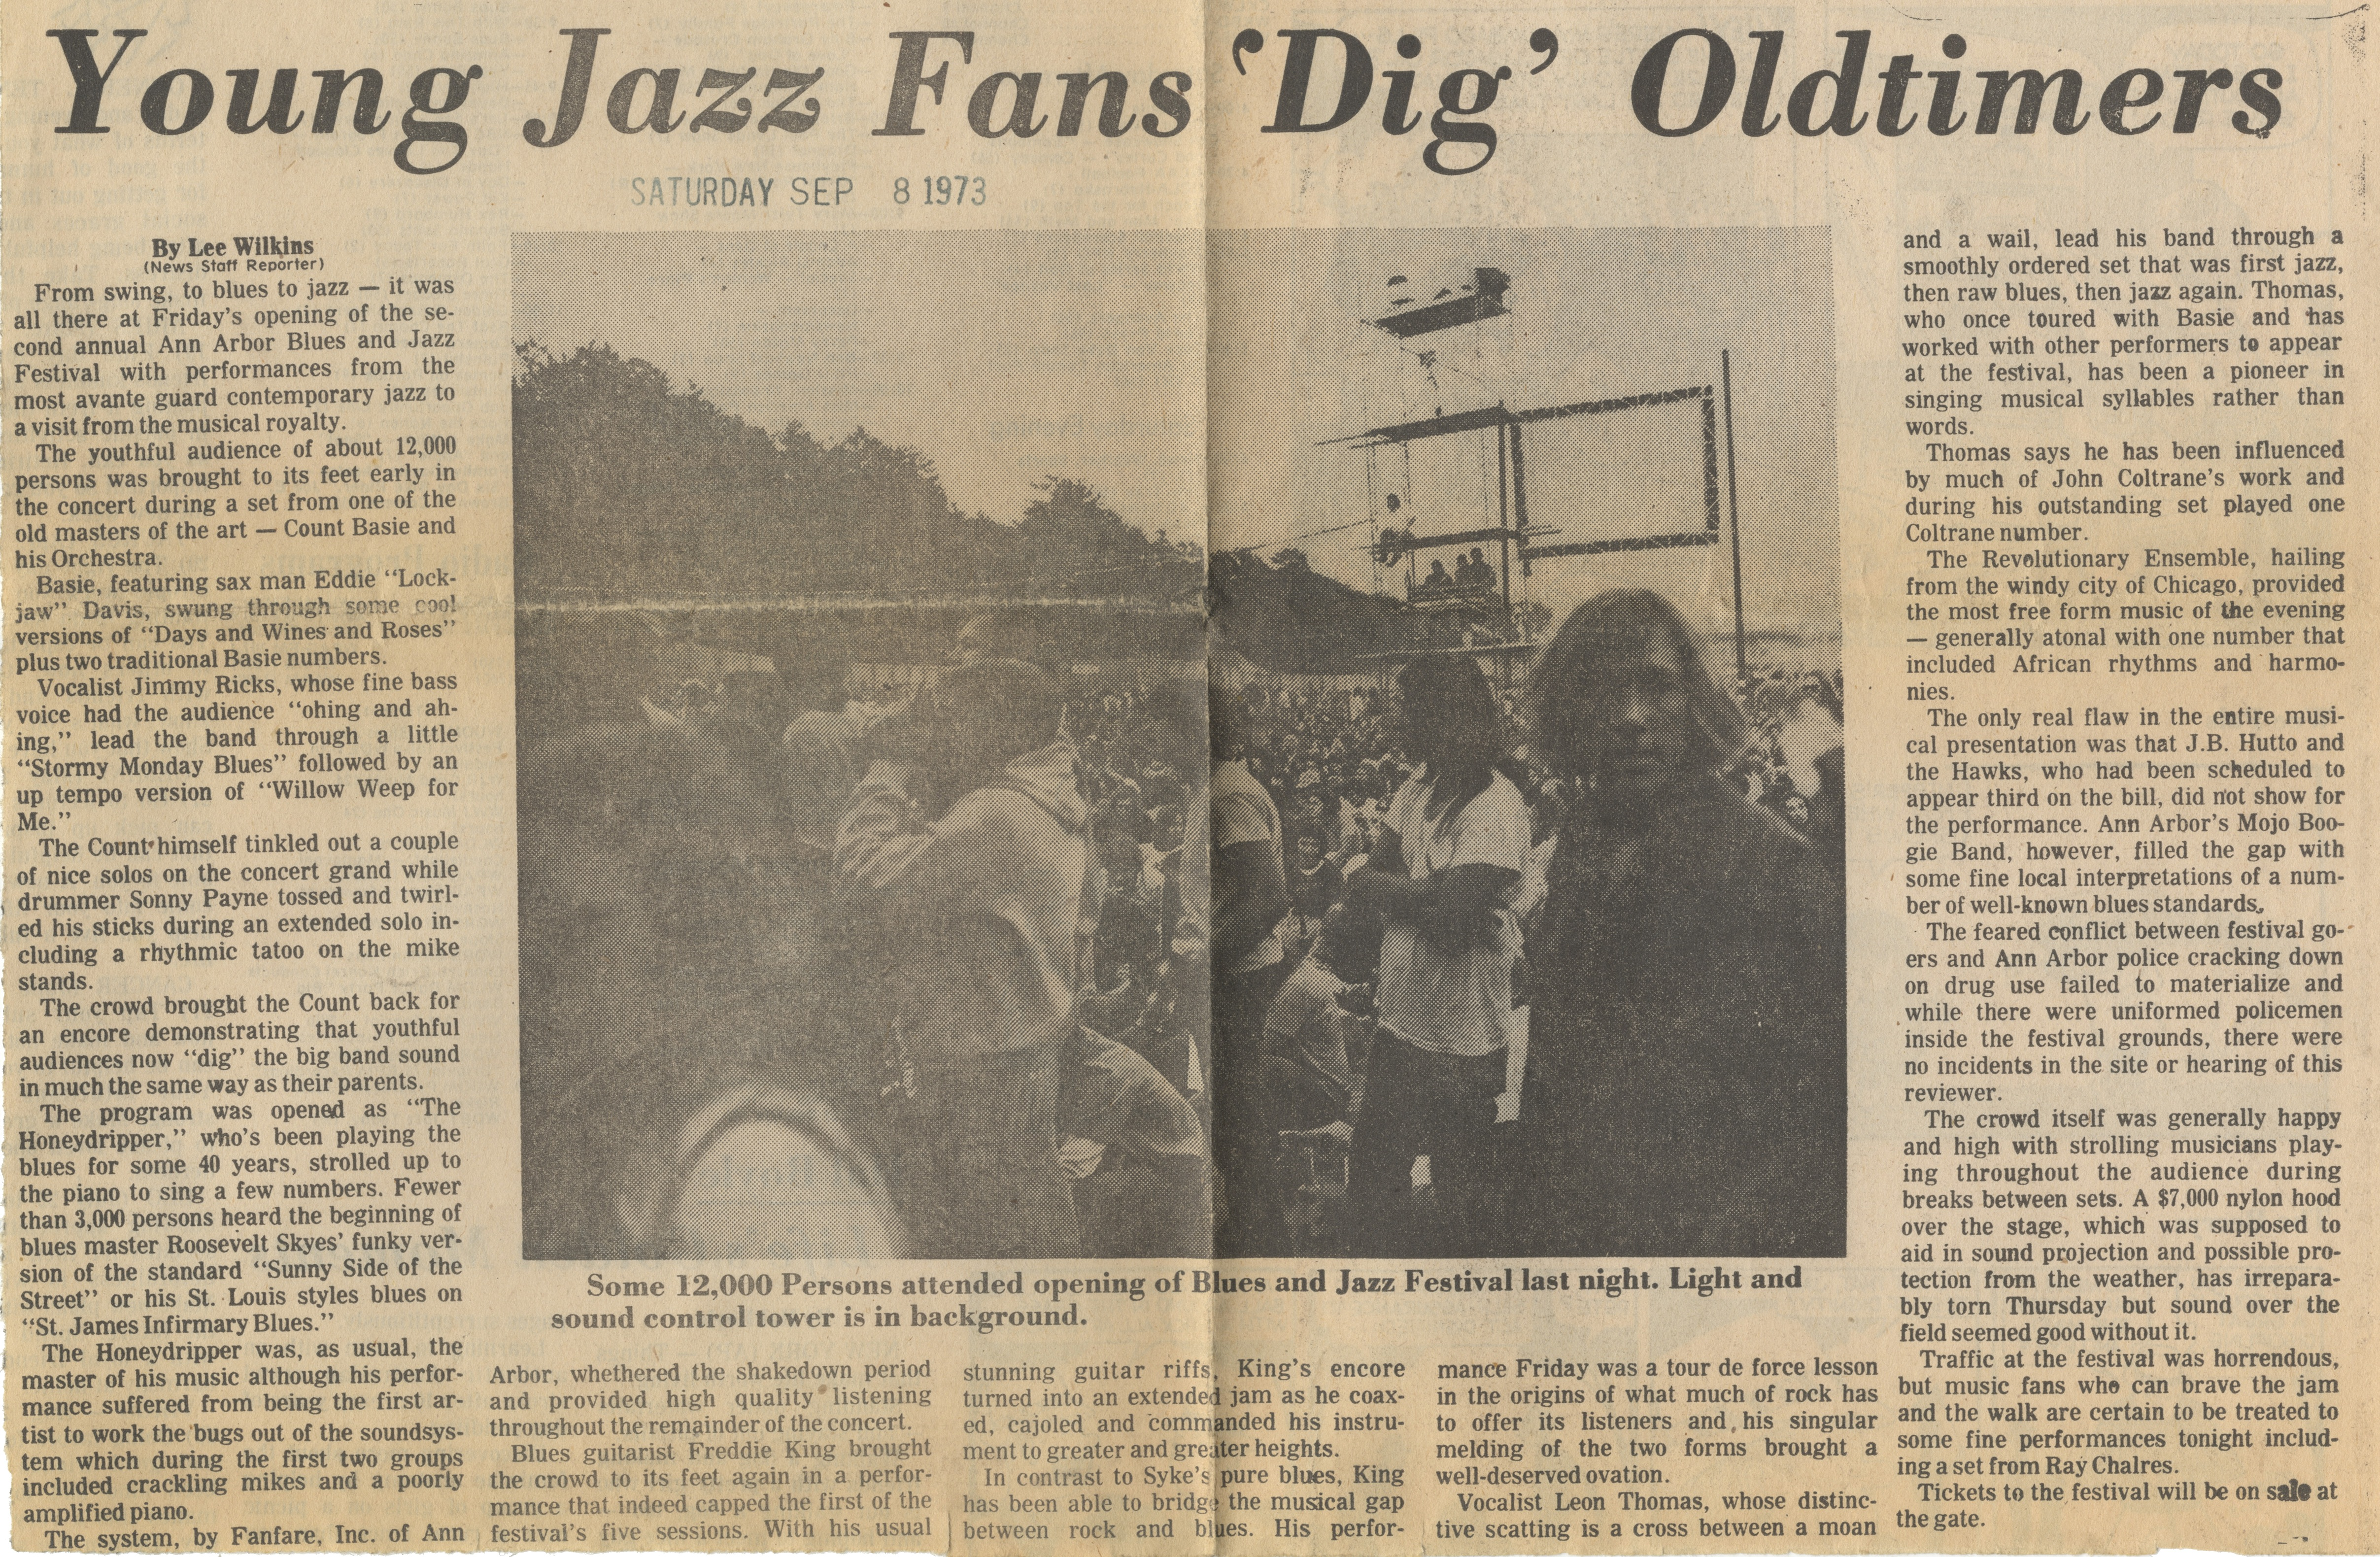 Young Jazz Fans 'Dig' Oldtimers image